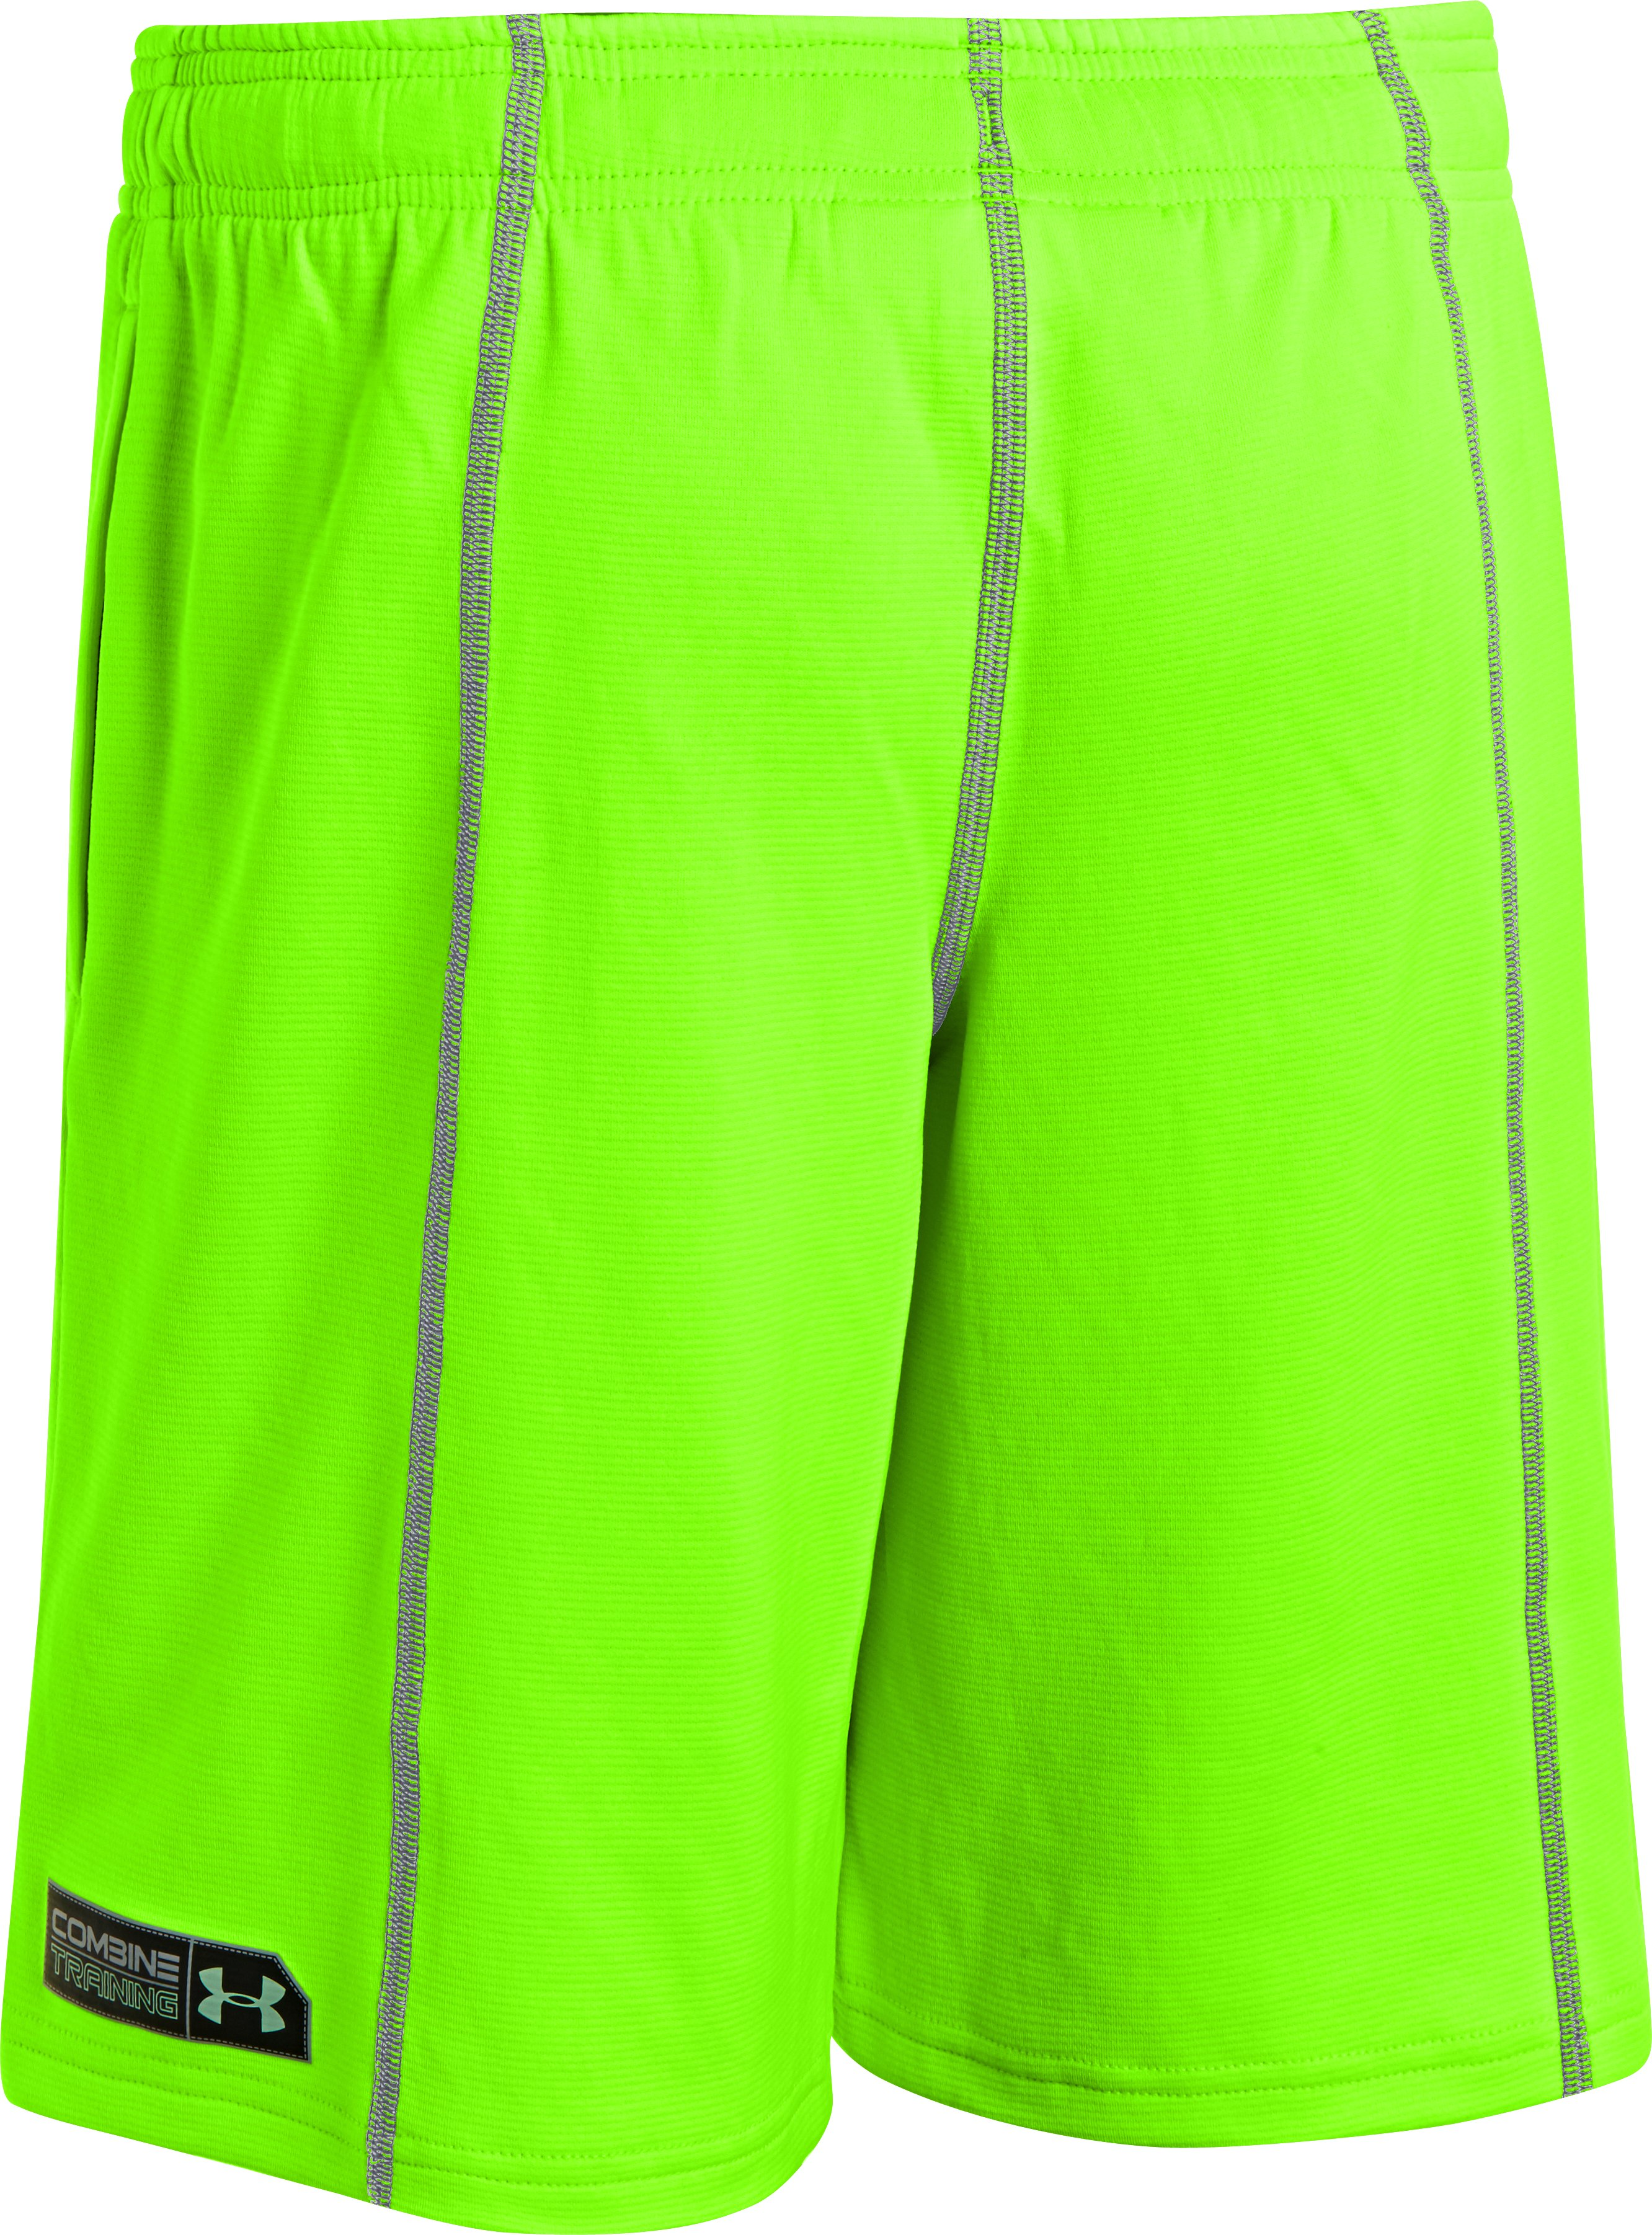 Boys' UA Combine® Training Shorts, HYPER GREEN, undefined